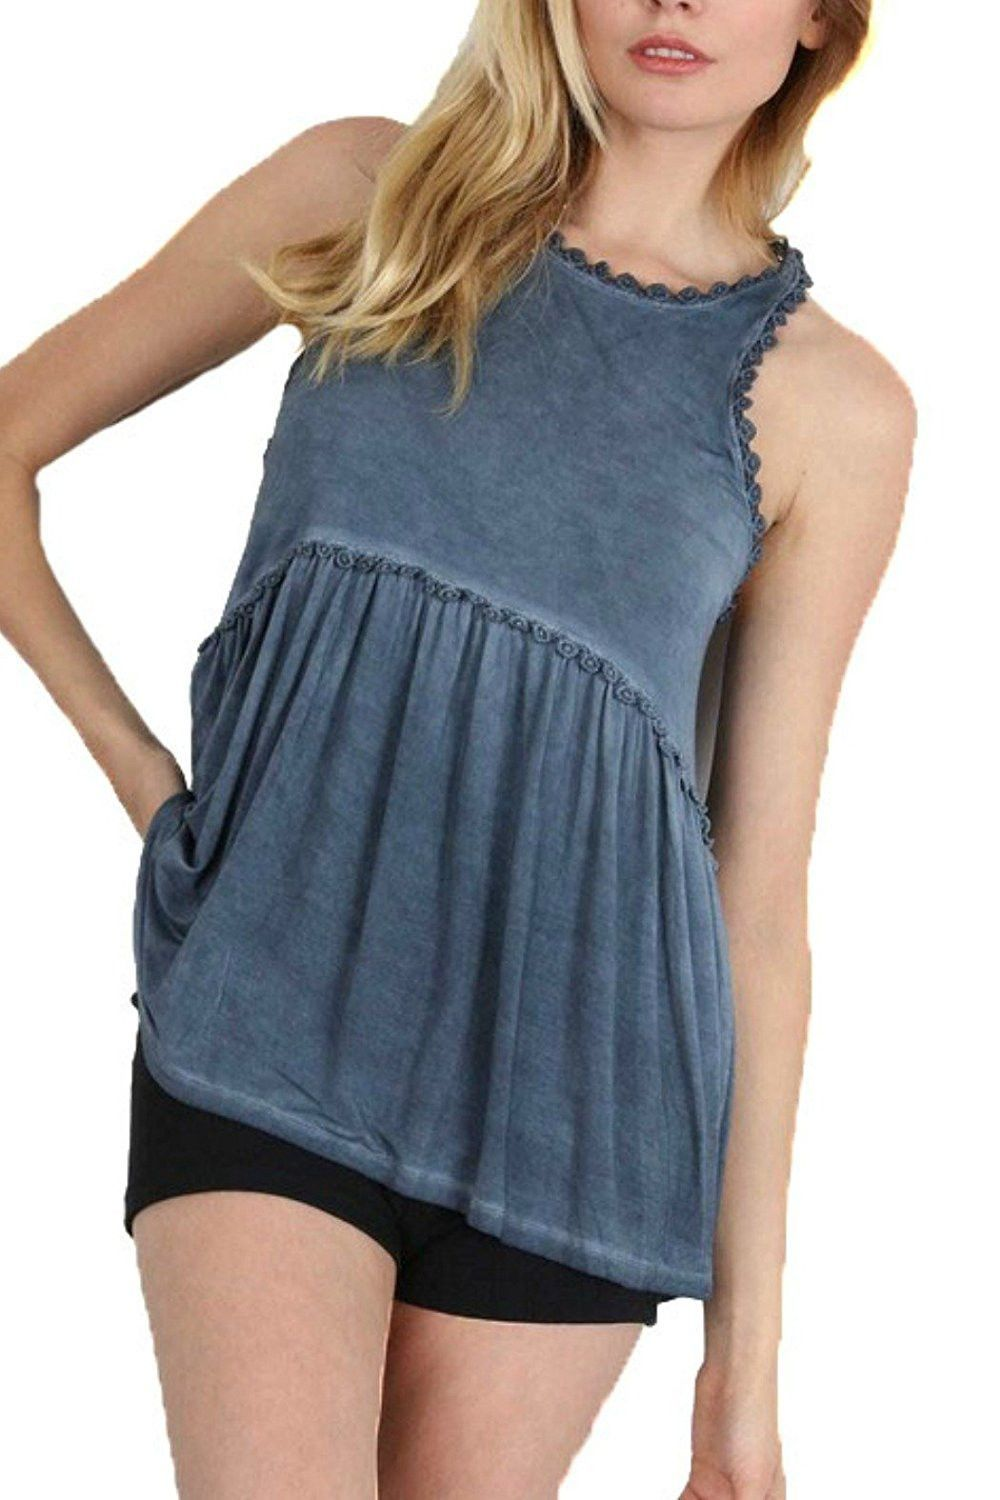 94ea7794cad33 Pol Clothing Women s Baby doll Racer back Tank Top